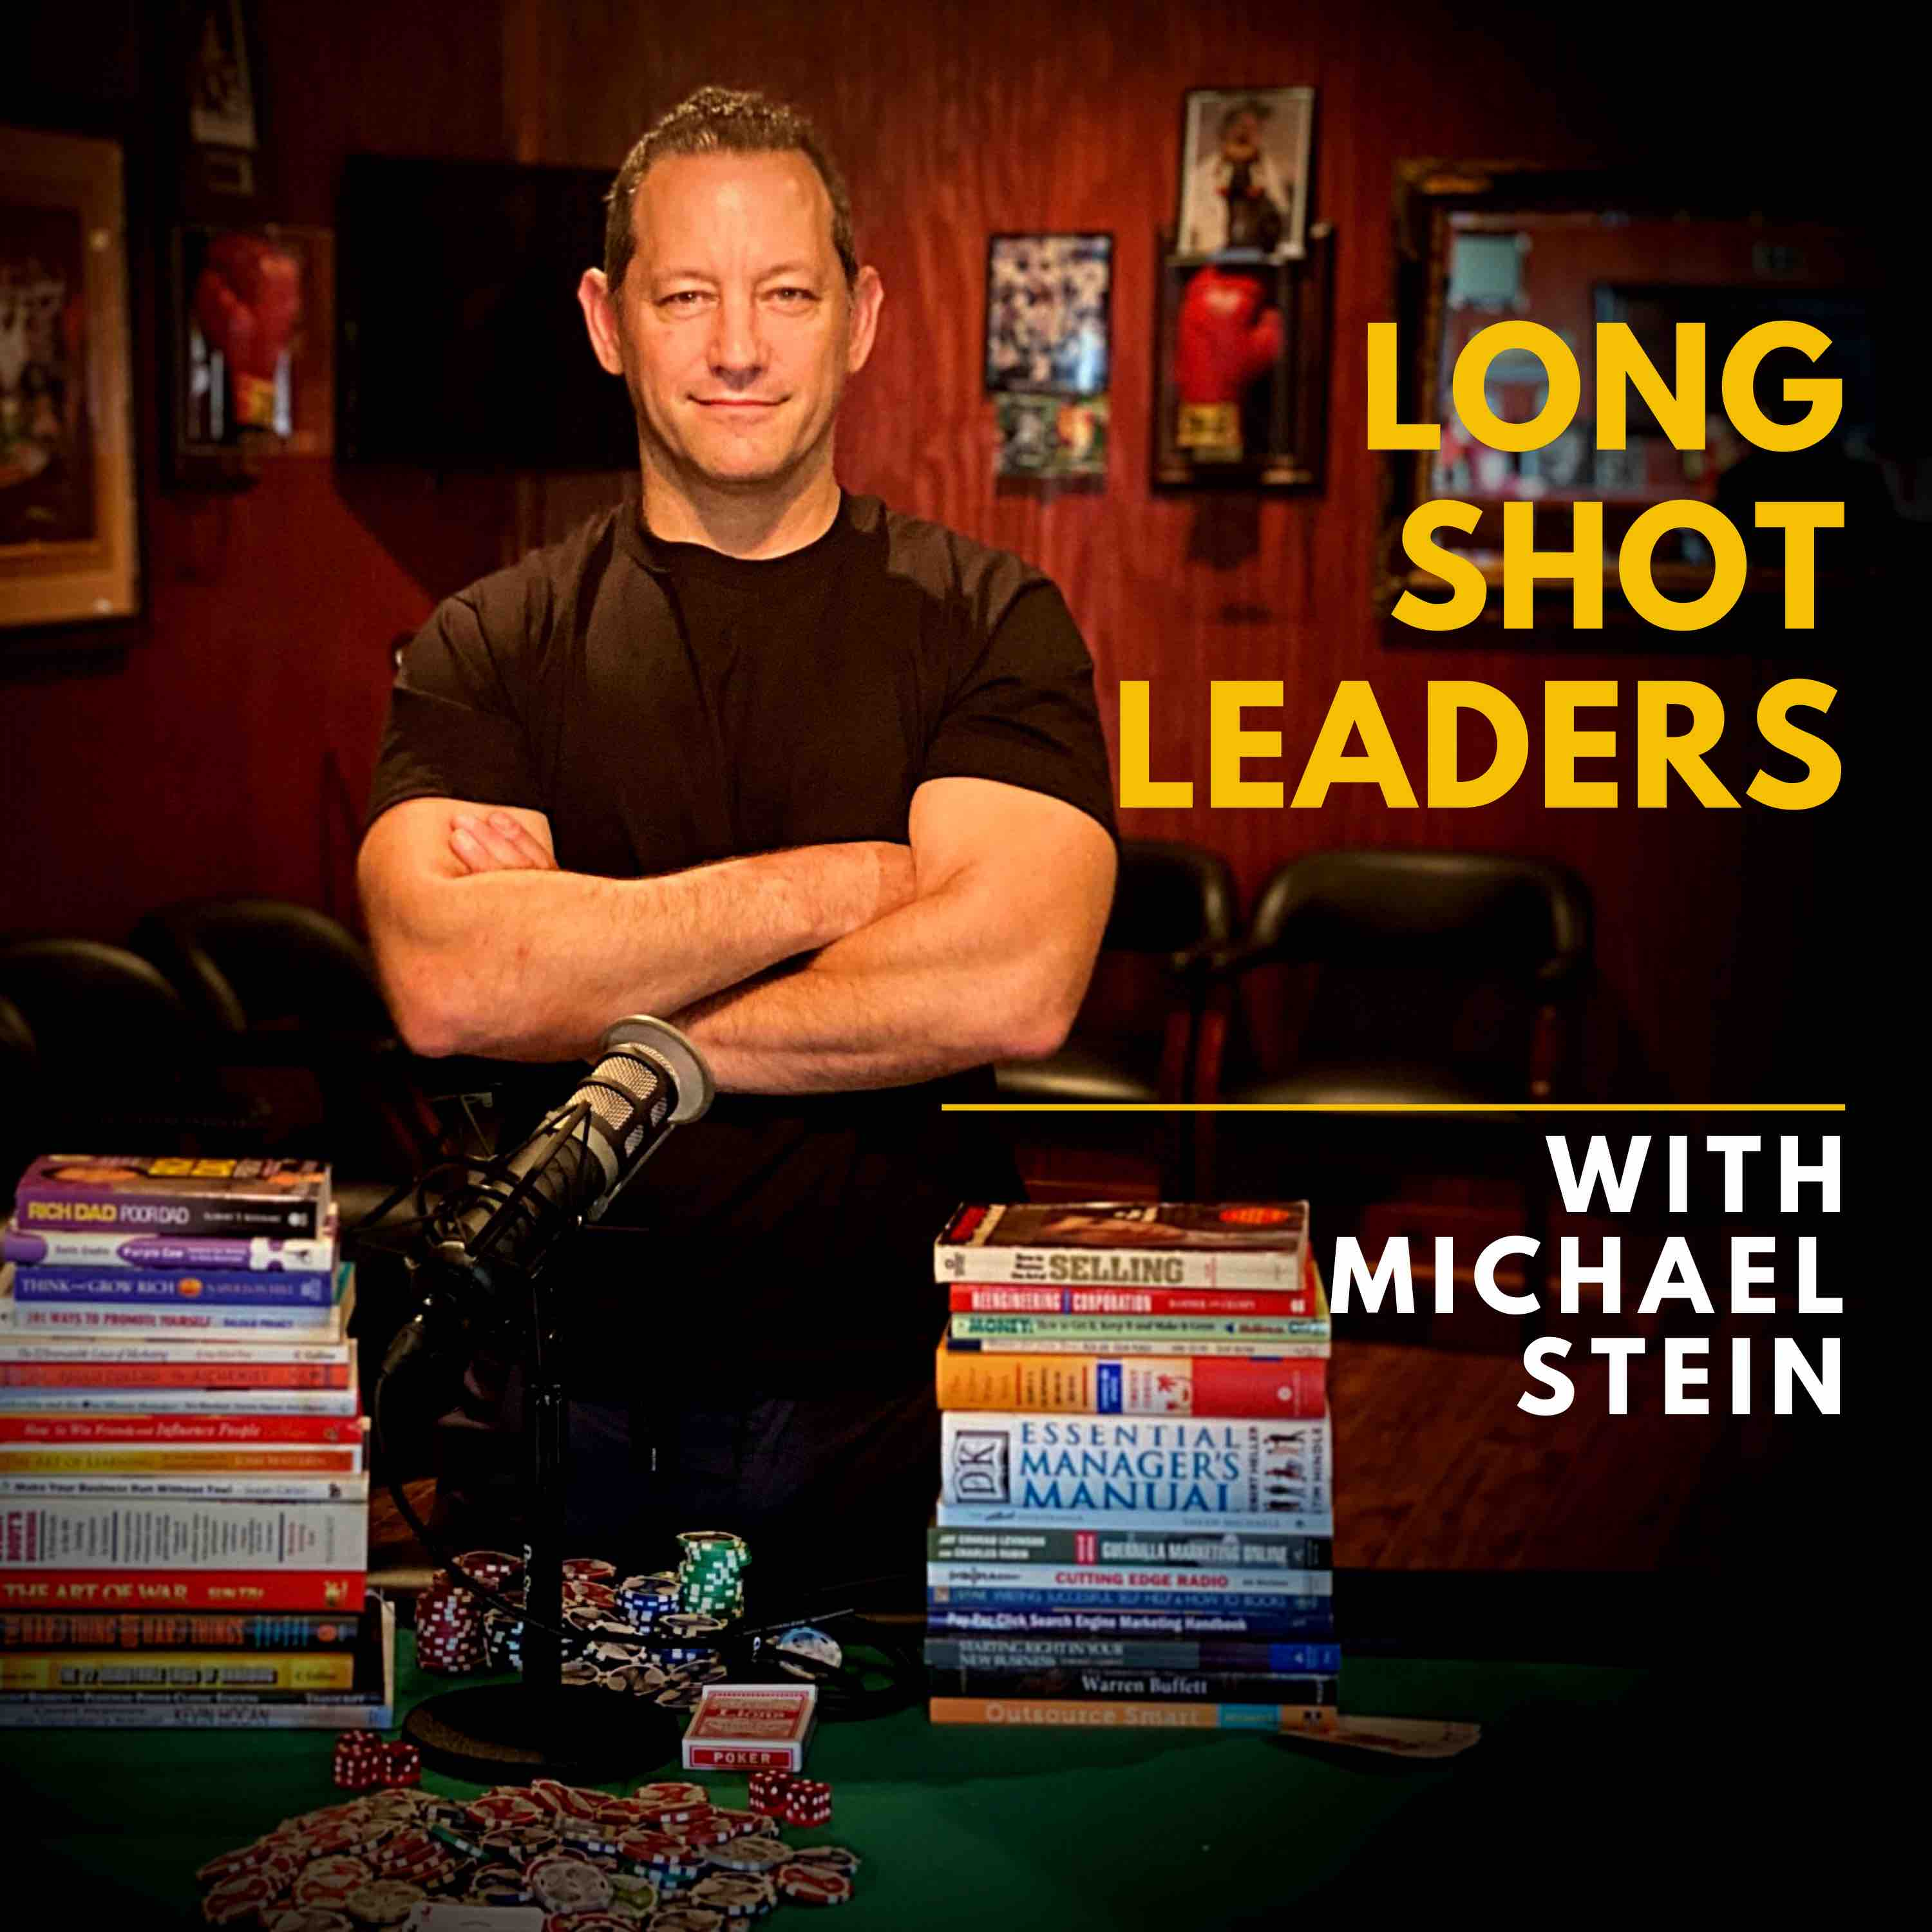 Long Shot Leaders with Michael Stein show art